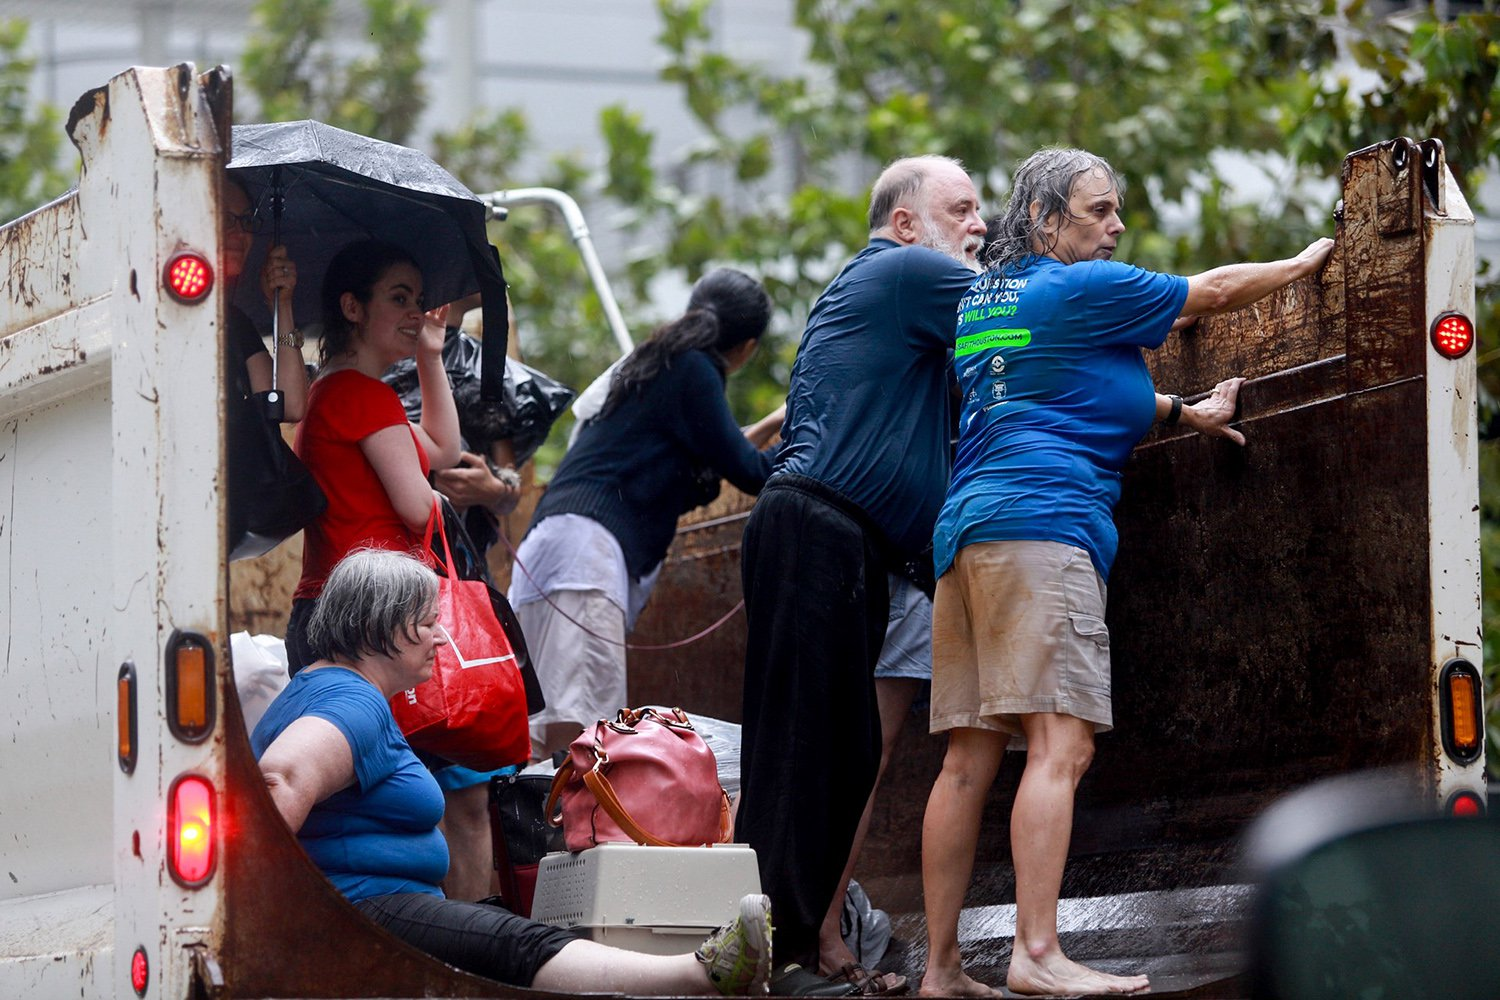 Evacuees from Meyerland — a neighborhood in southwest Houston hit hard by Harvey — arrive at the George R. Brown Convention Center on Sunday, Aug. 27, 2017.